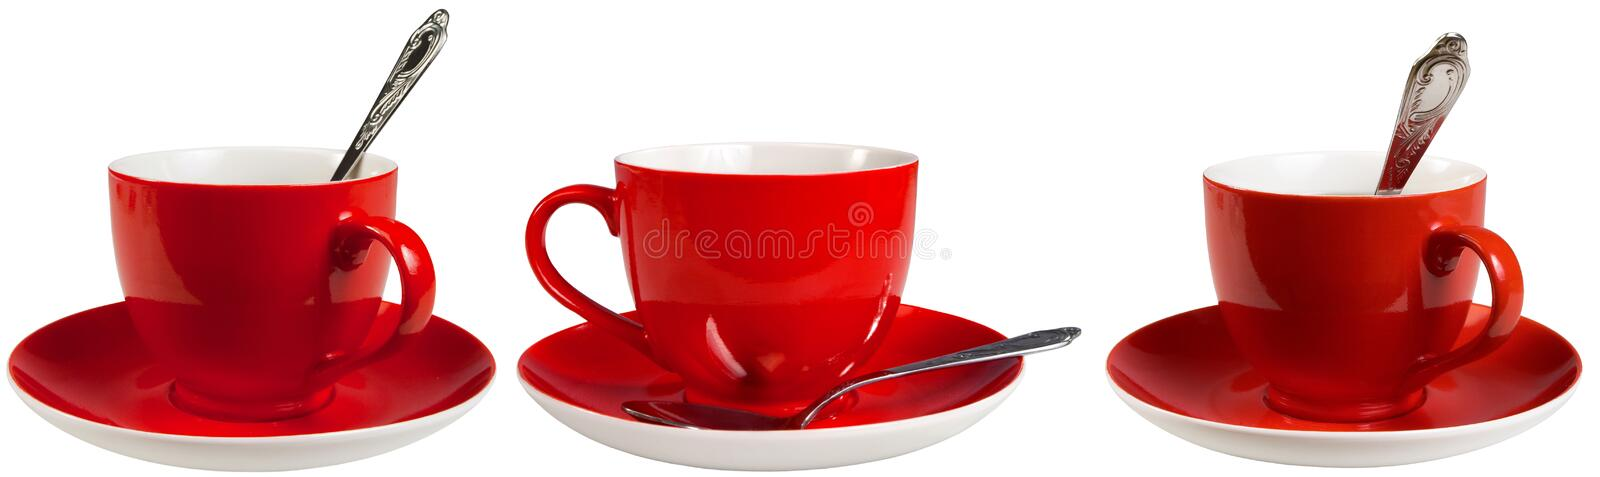 Download Red cups stock photo. Image of object, single, isolated - 16096576